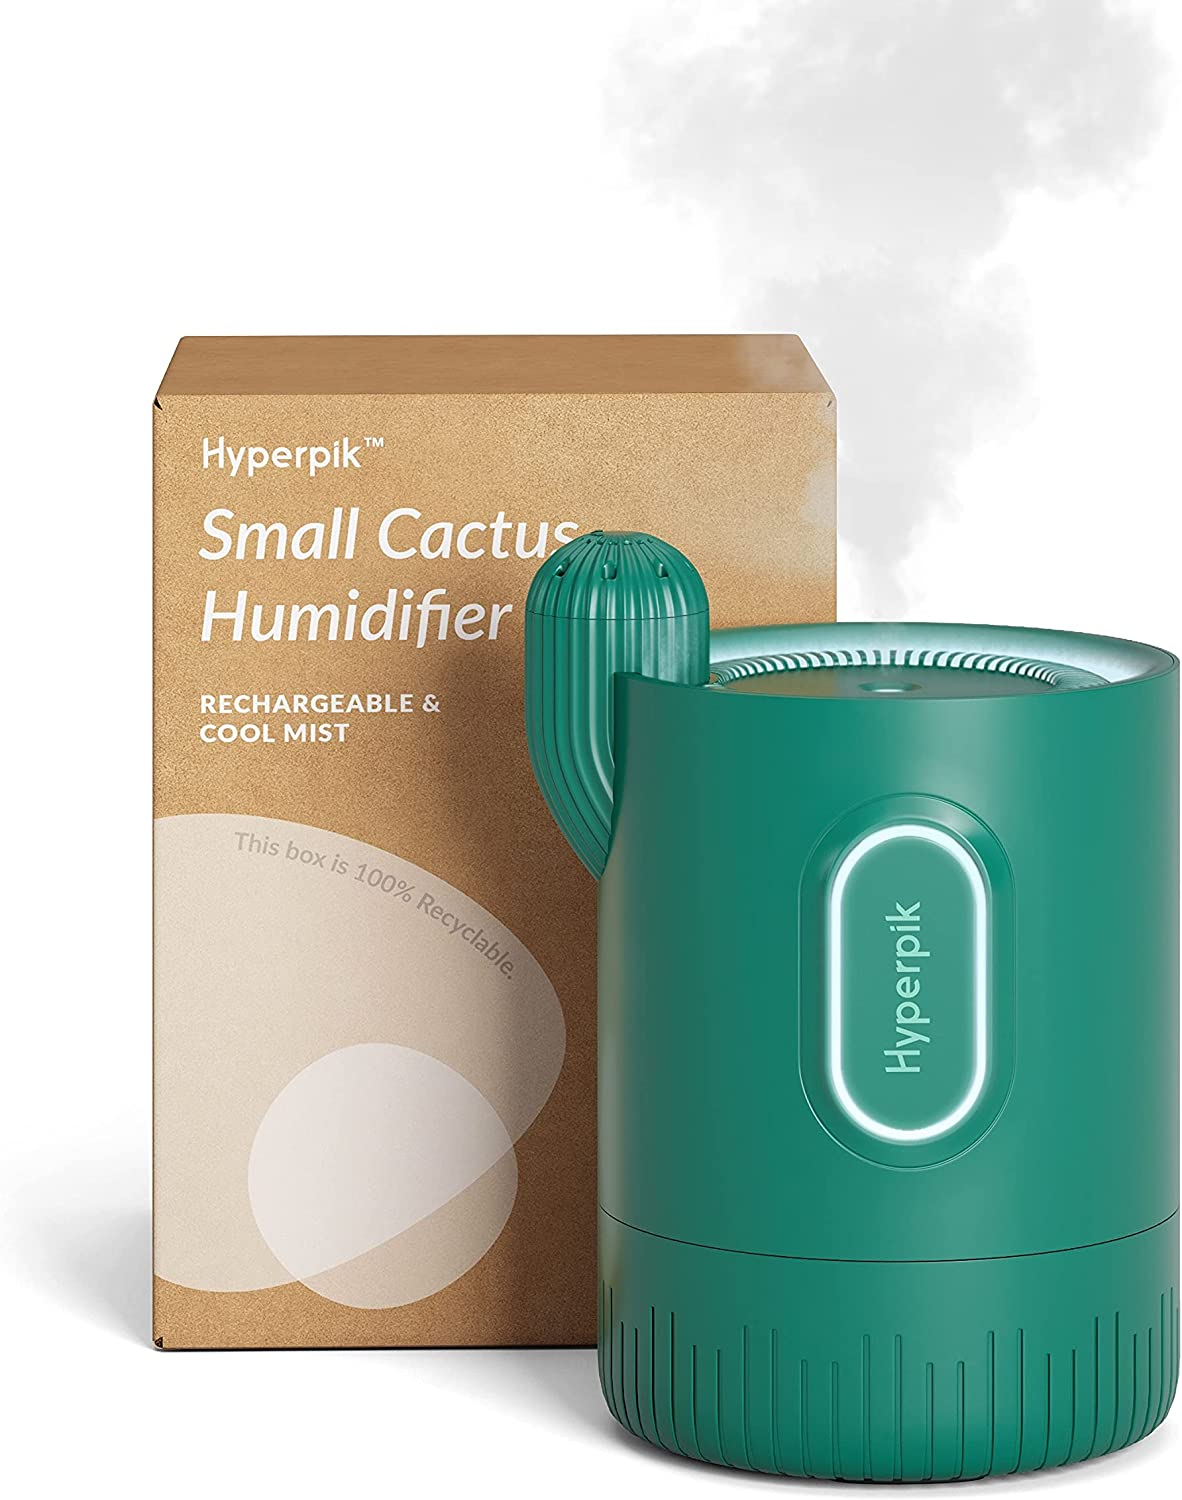 Hyperpik Max 46% OFF Portable Mini Popular brand Humidifier Pla Operated Battery Cordless